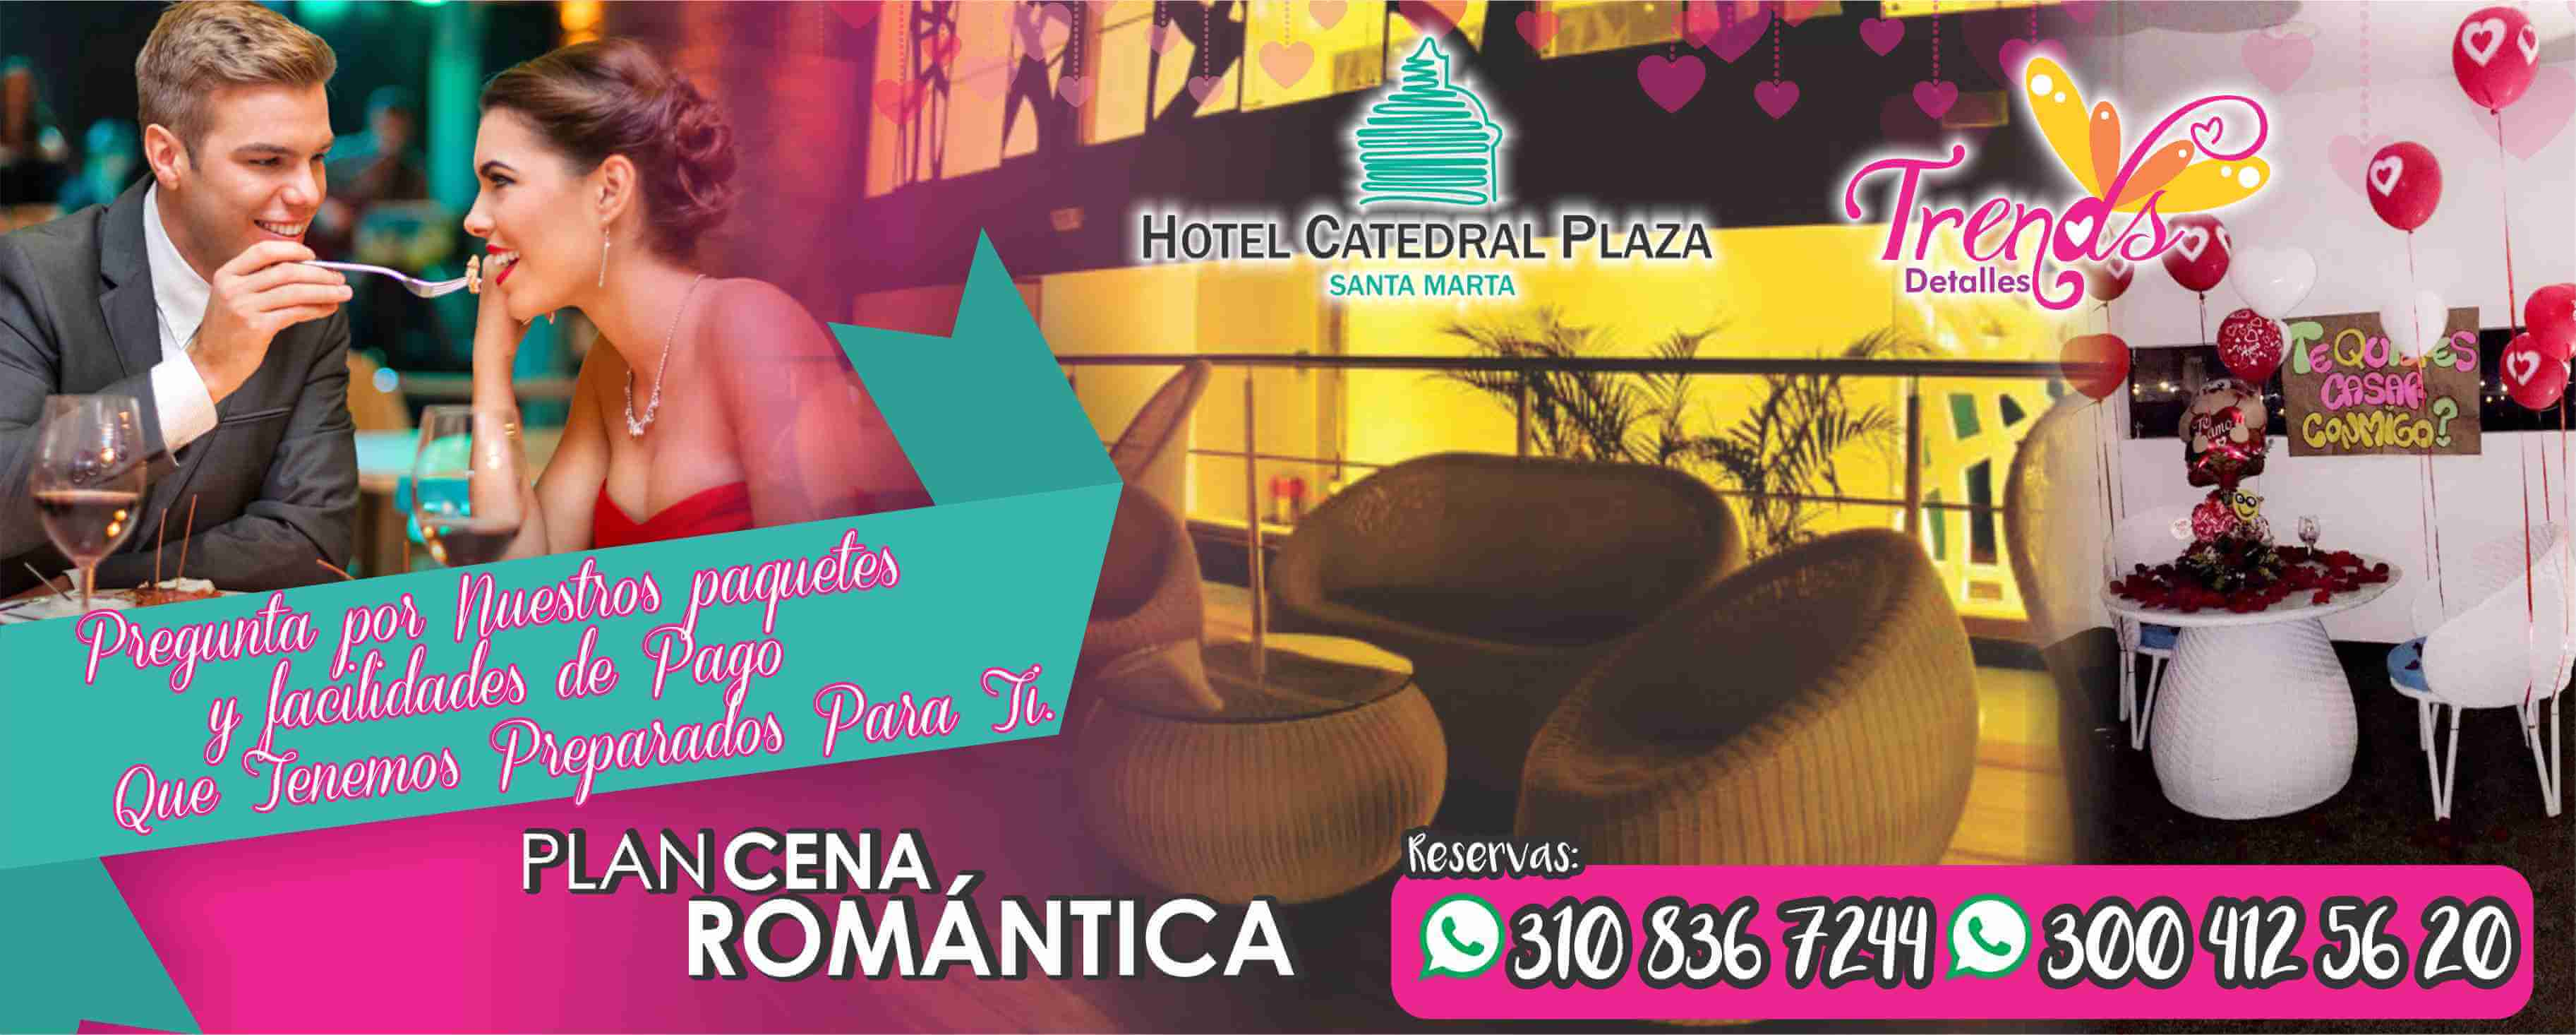 Hotel Catedral Plaza